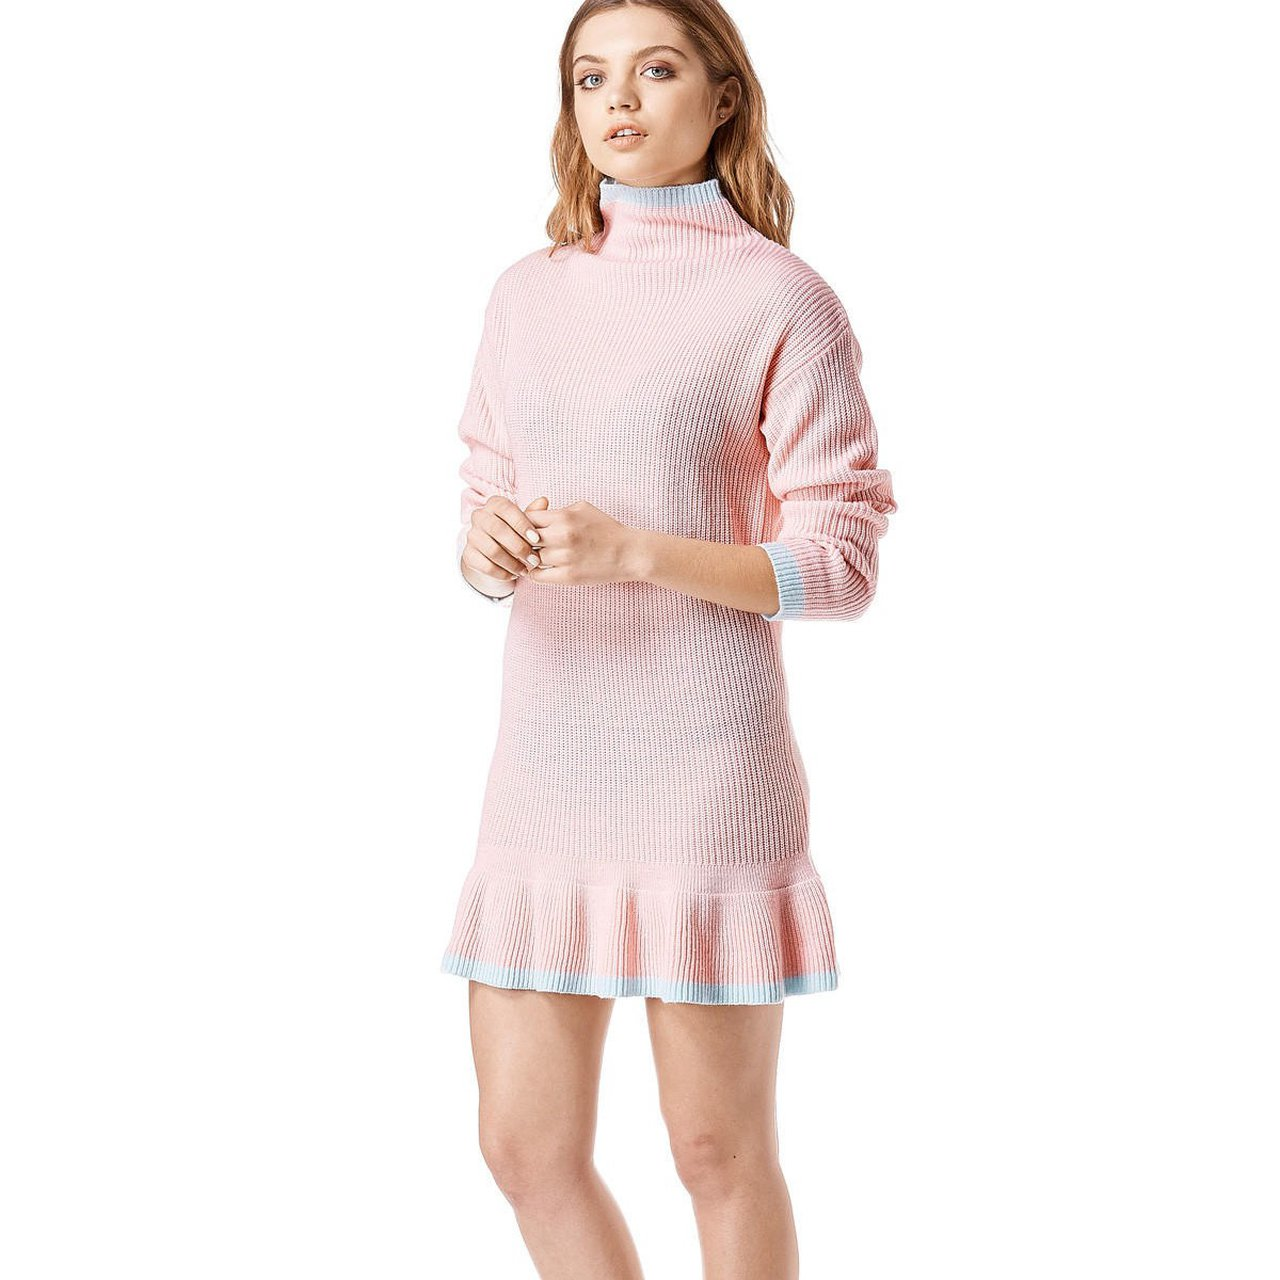 f34e519be1 Nwt unif mistral dress super cute pastel pink and blue knit depop jpg  1280x1280 Pretty pastel